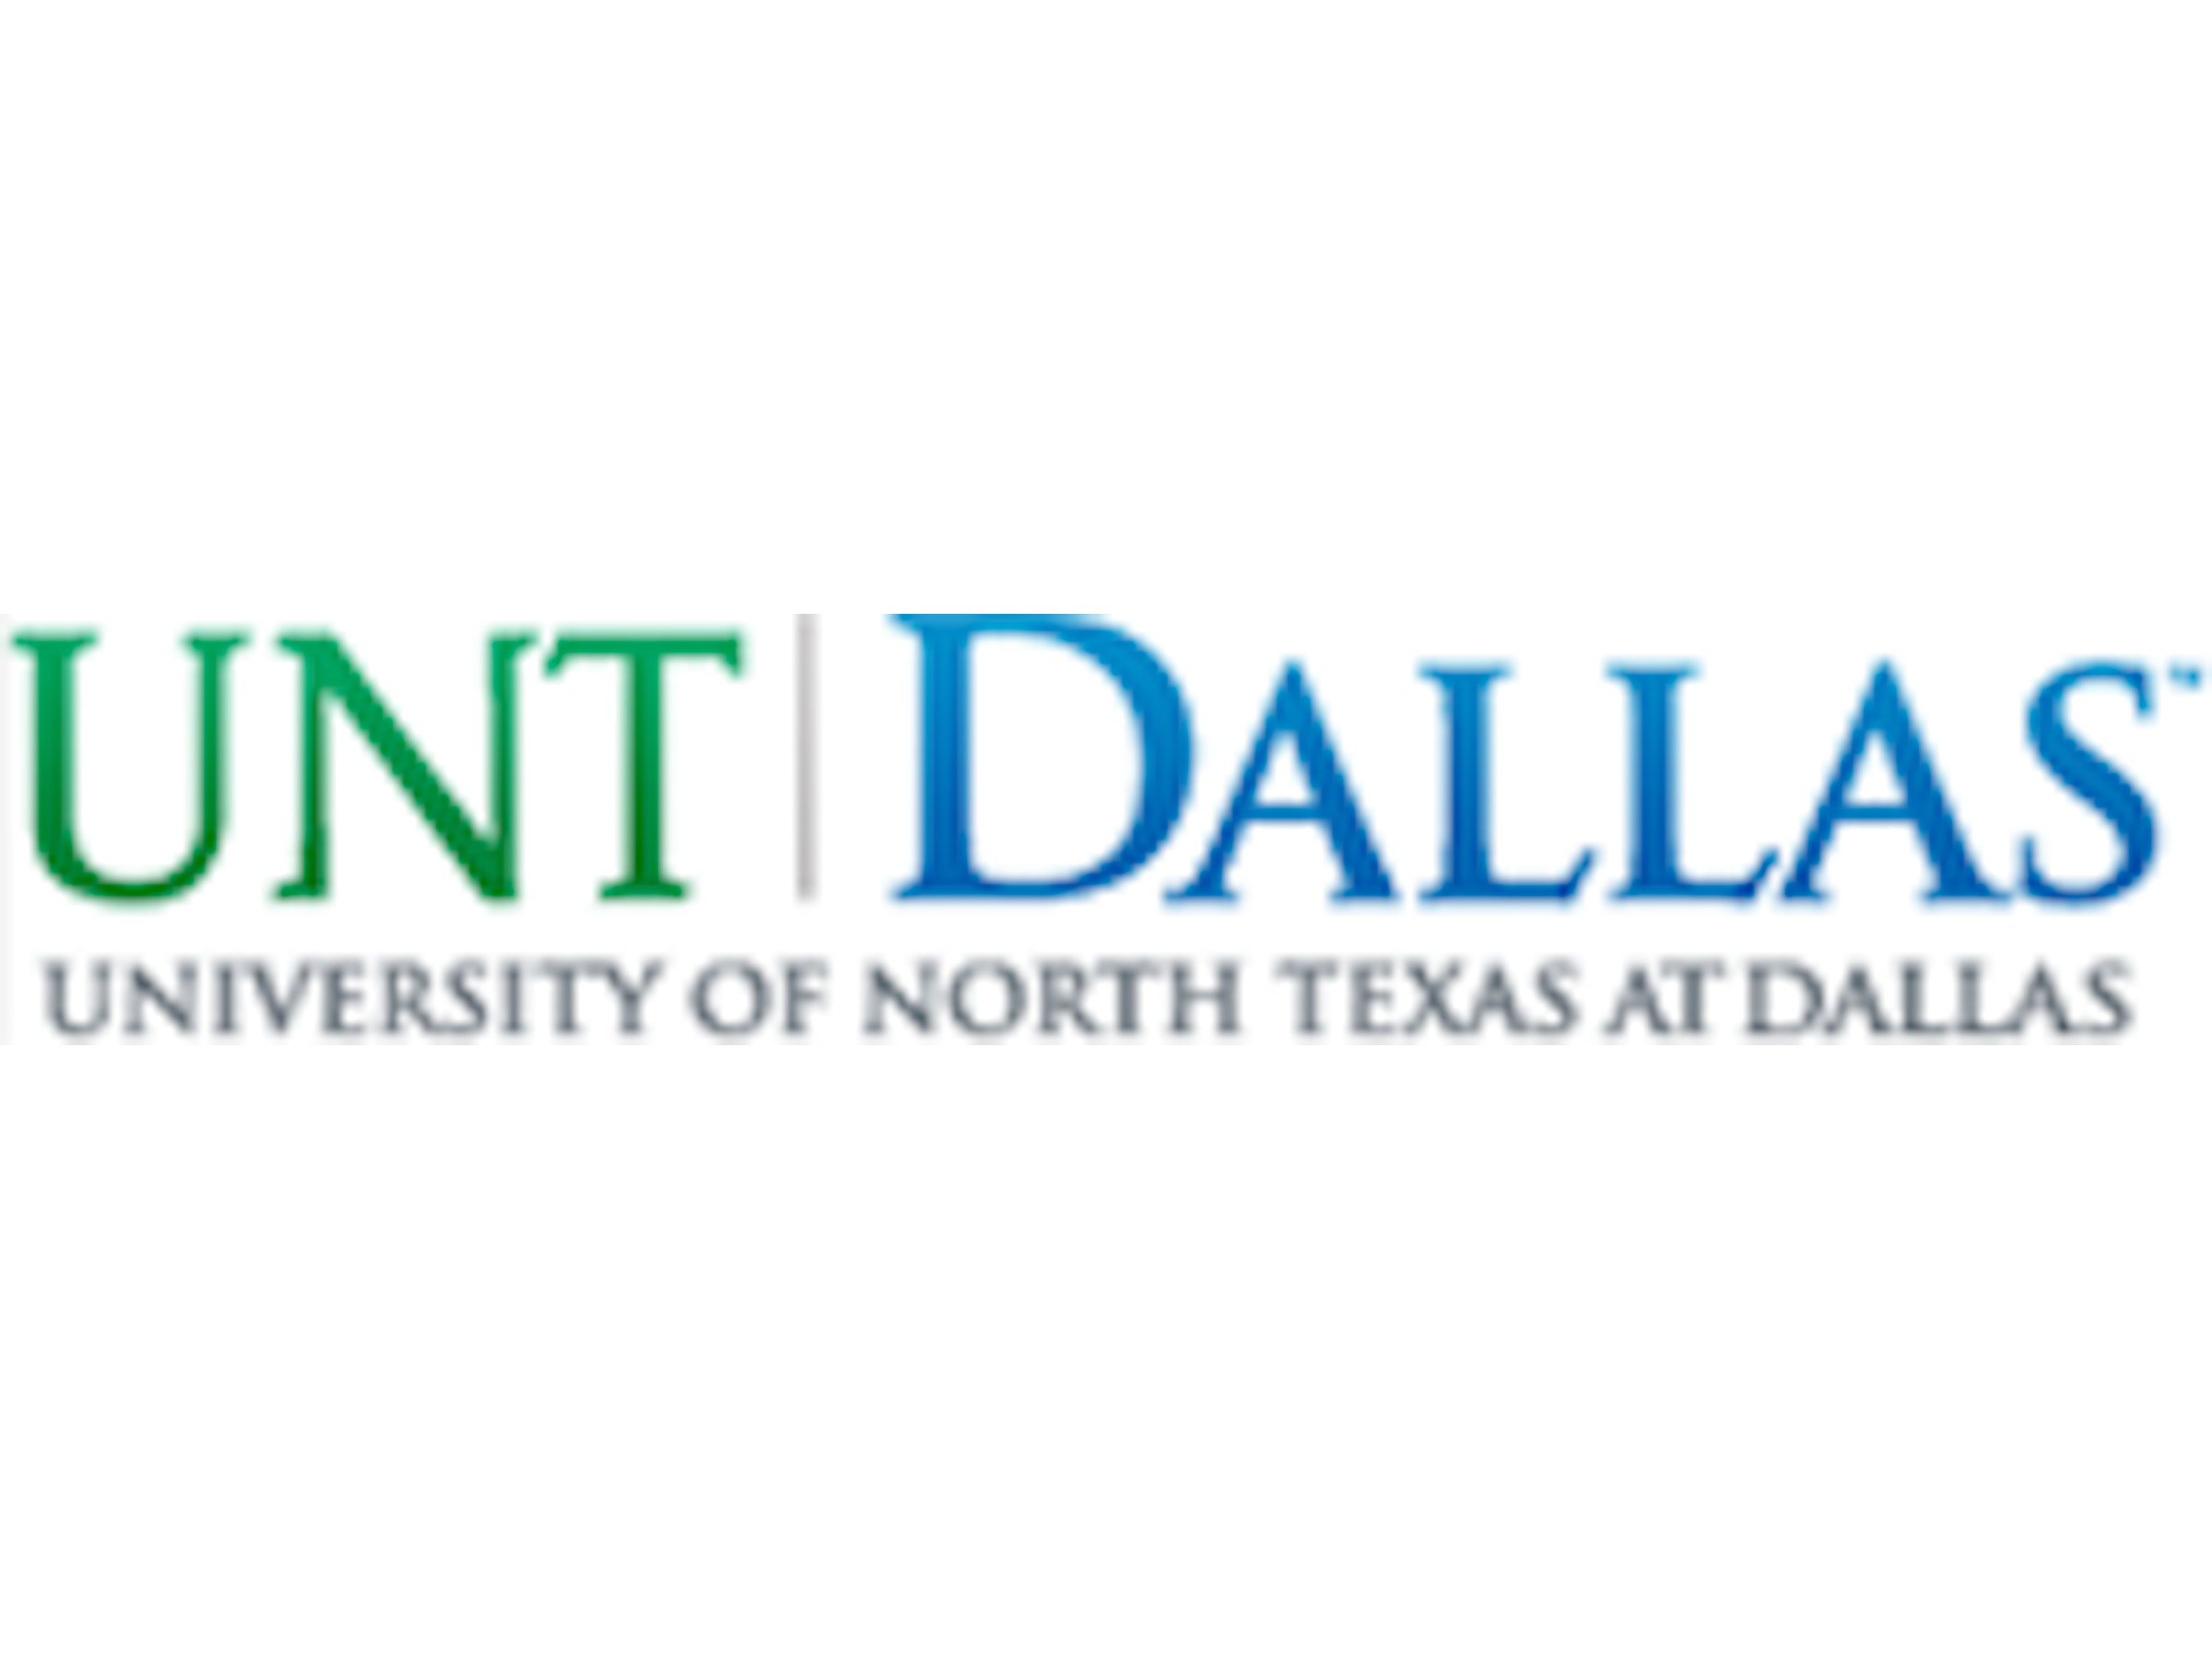 University of North Texas at Dallas in Beyond Dallas